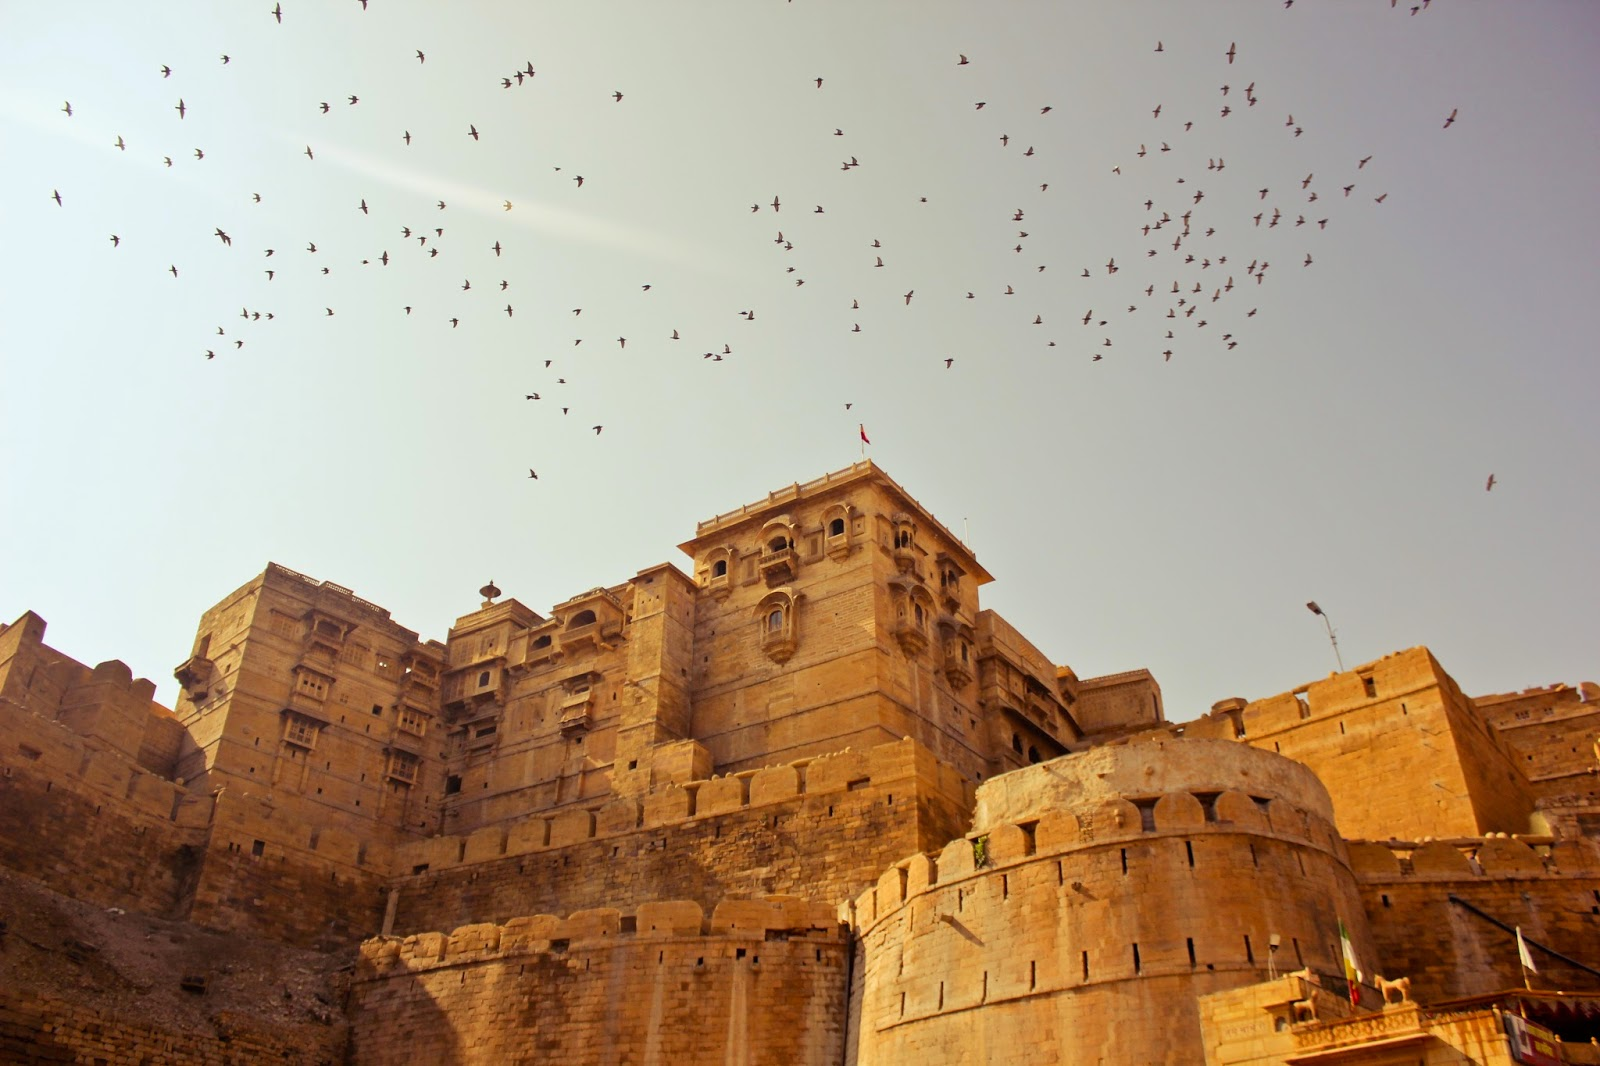 A view of jaisalmer fort